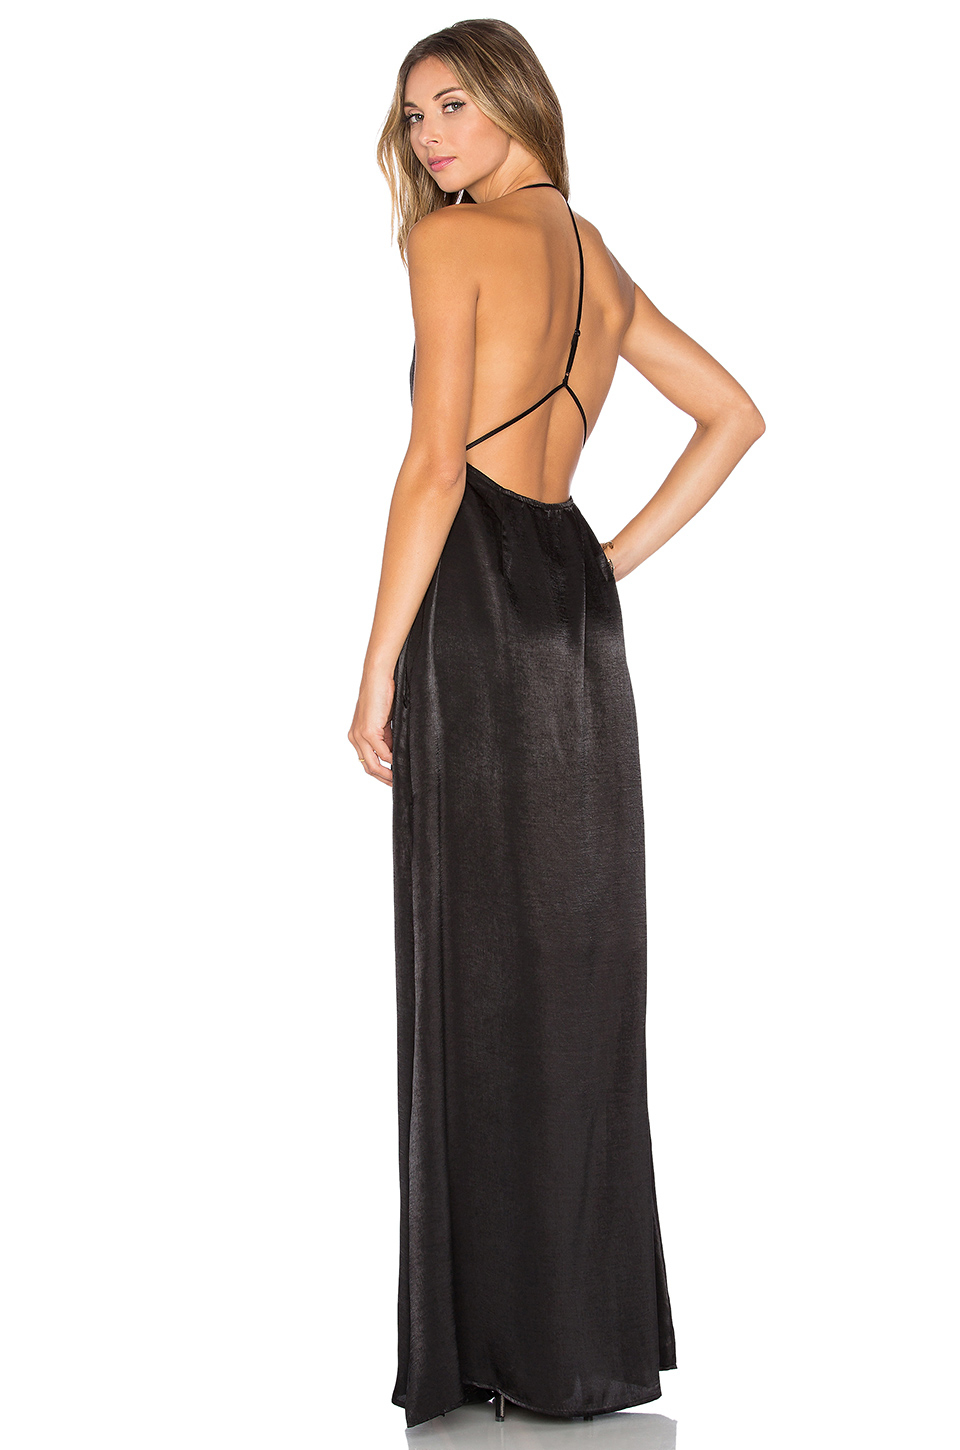 Capulet Halter Neck Maxi Dress in Black | Lyst